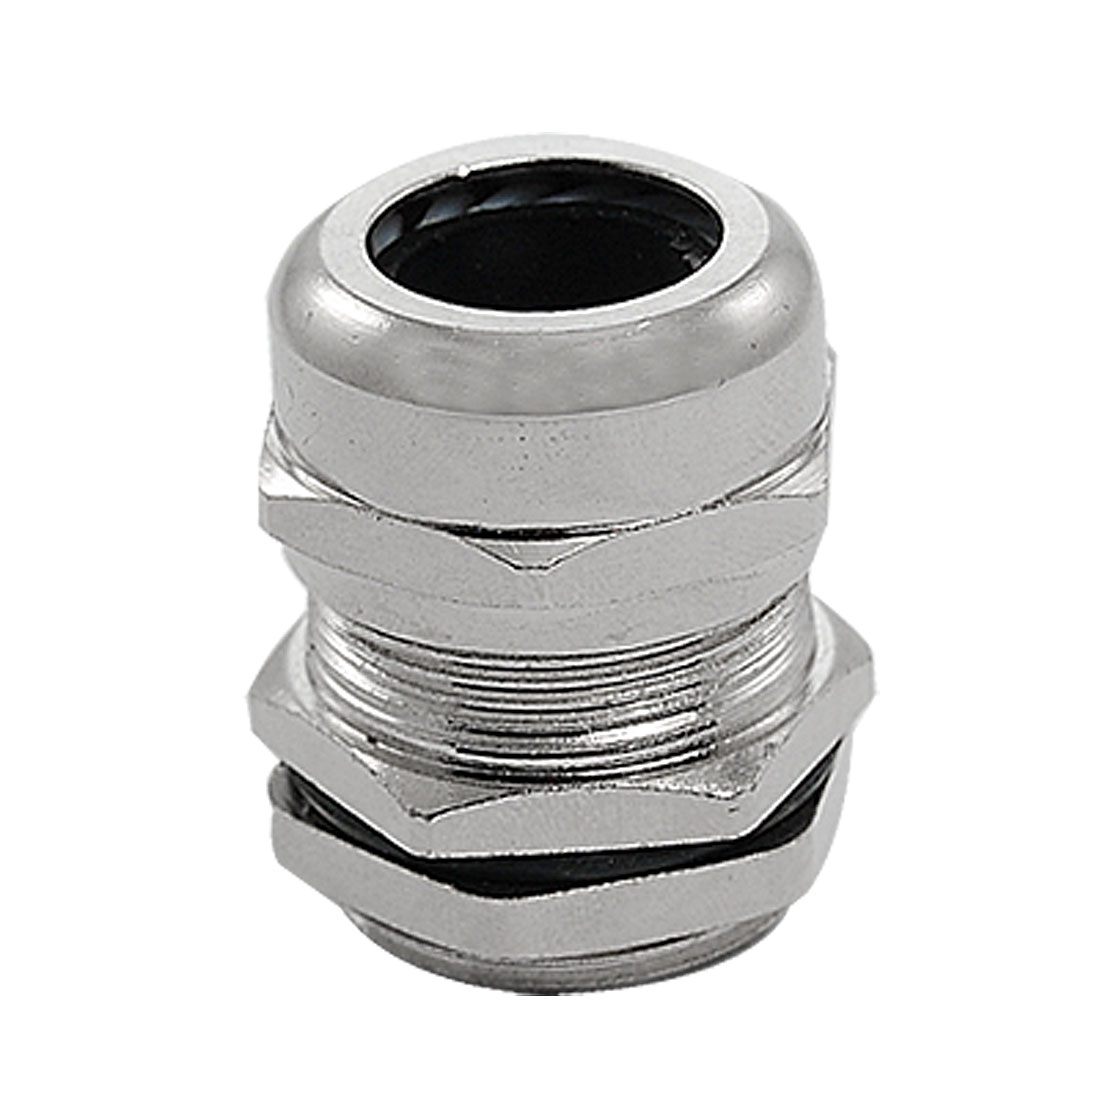 M22 Stainless Steel Thread Waterproof Cable Gland Joint